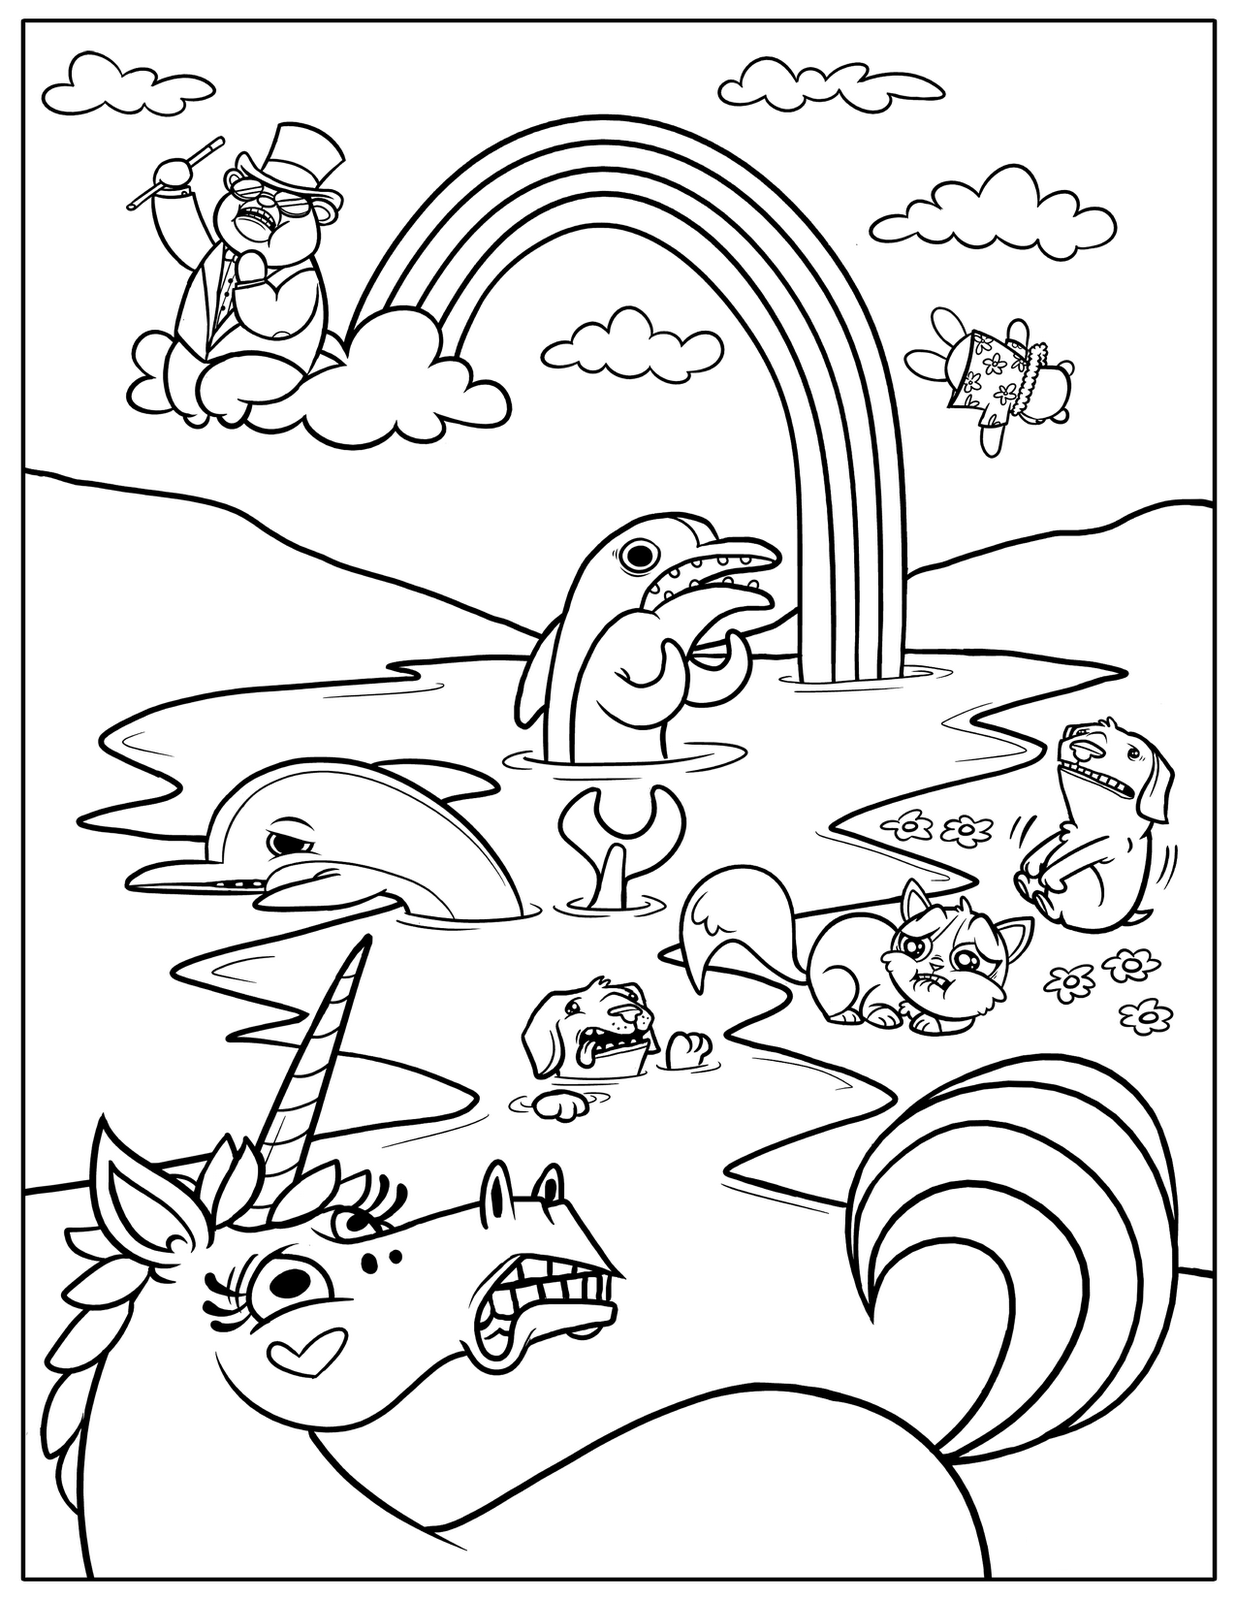 Free printable rainbow coloring pages for kids for Free printable coloring pages for adults and kids